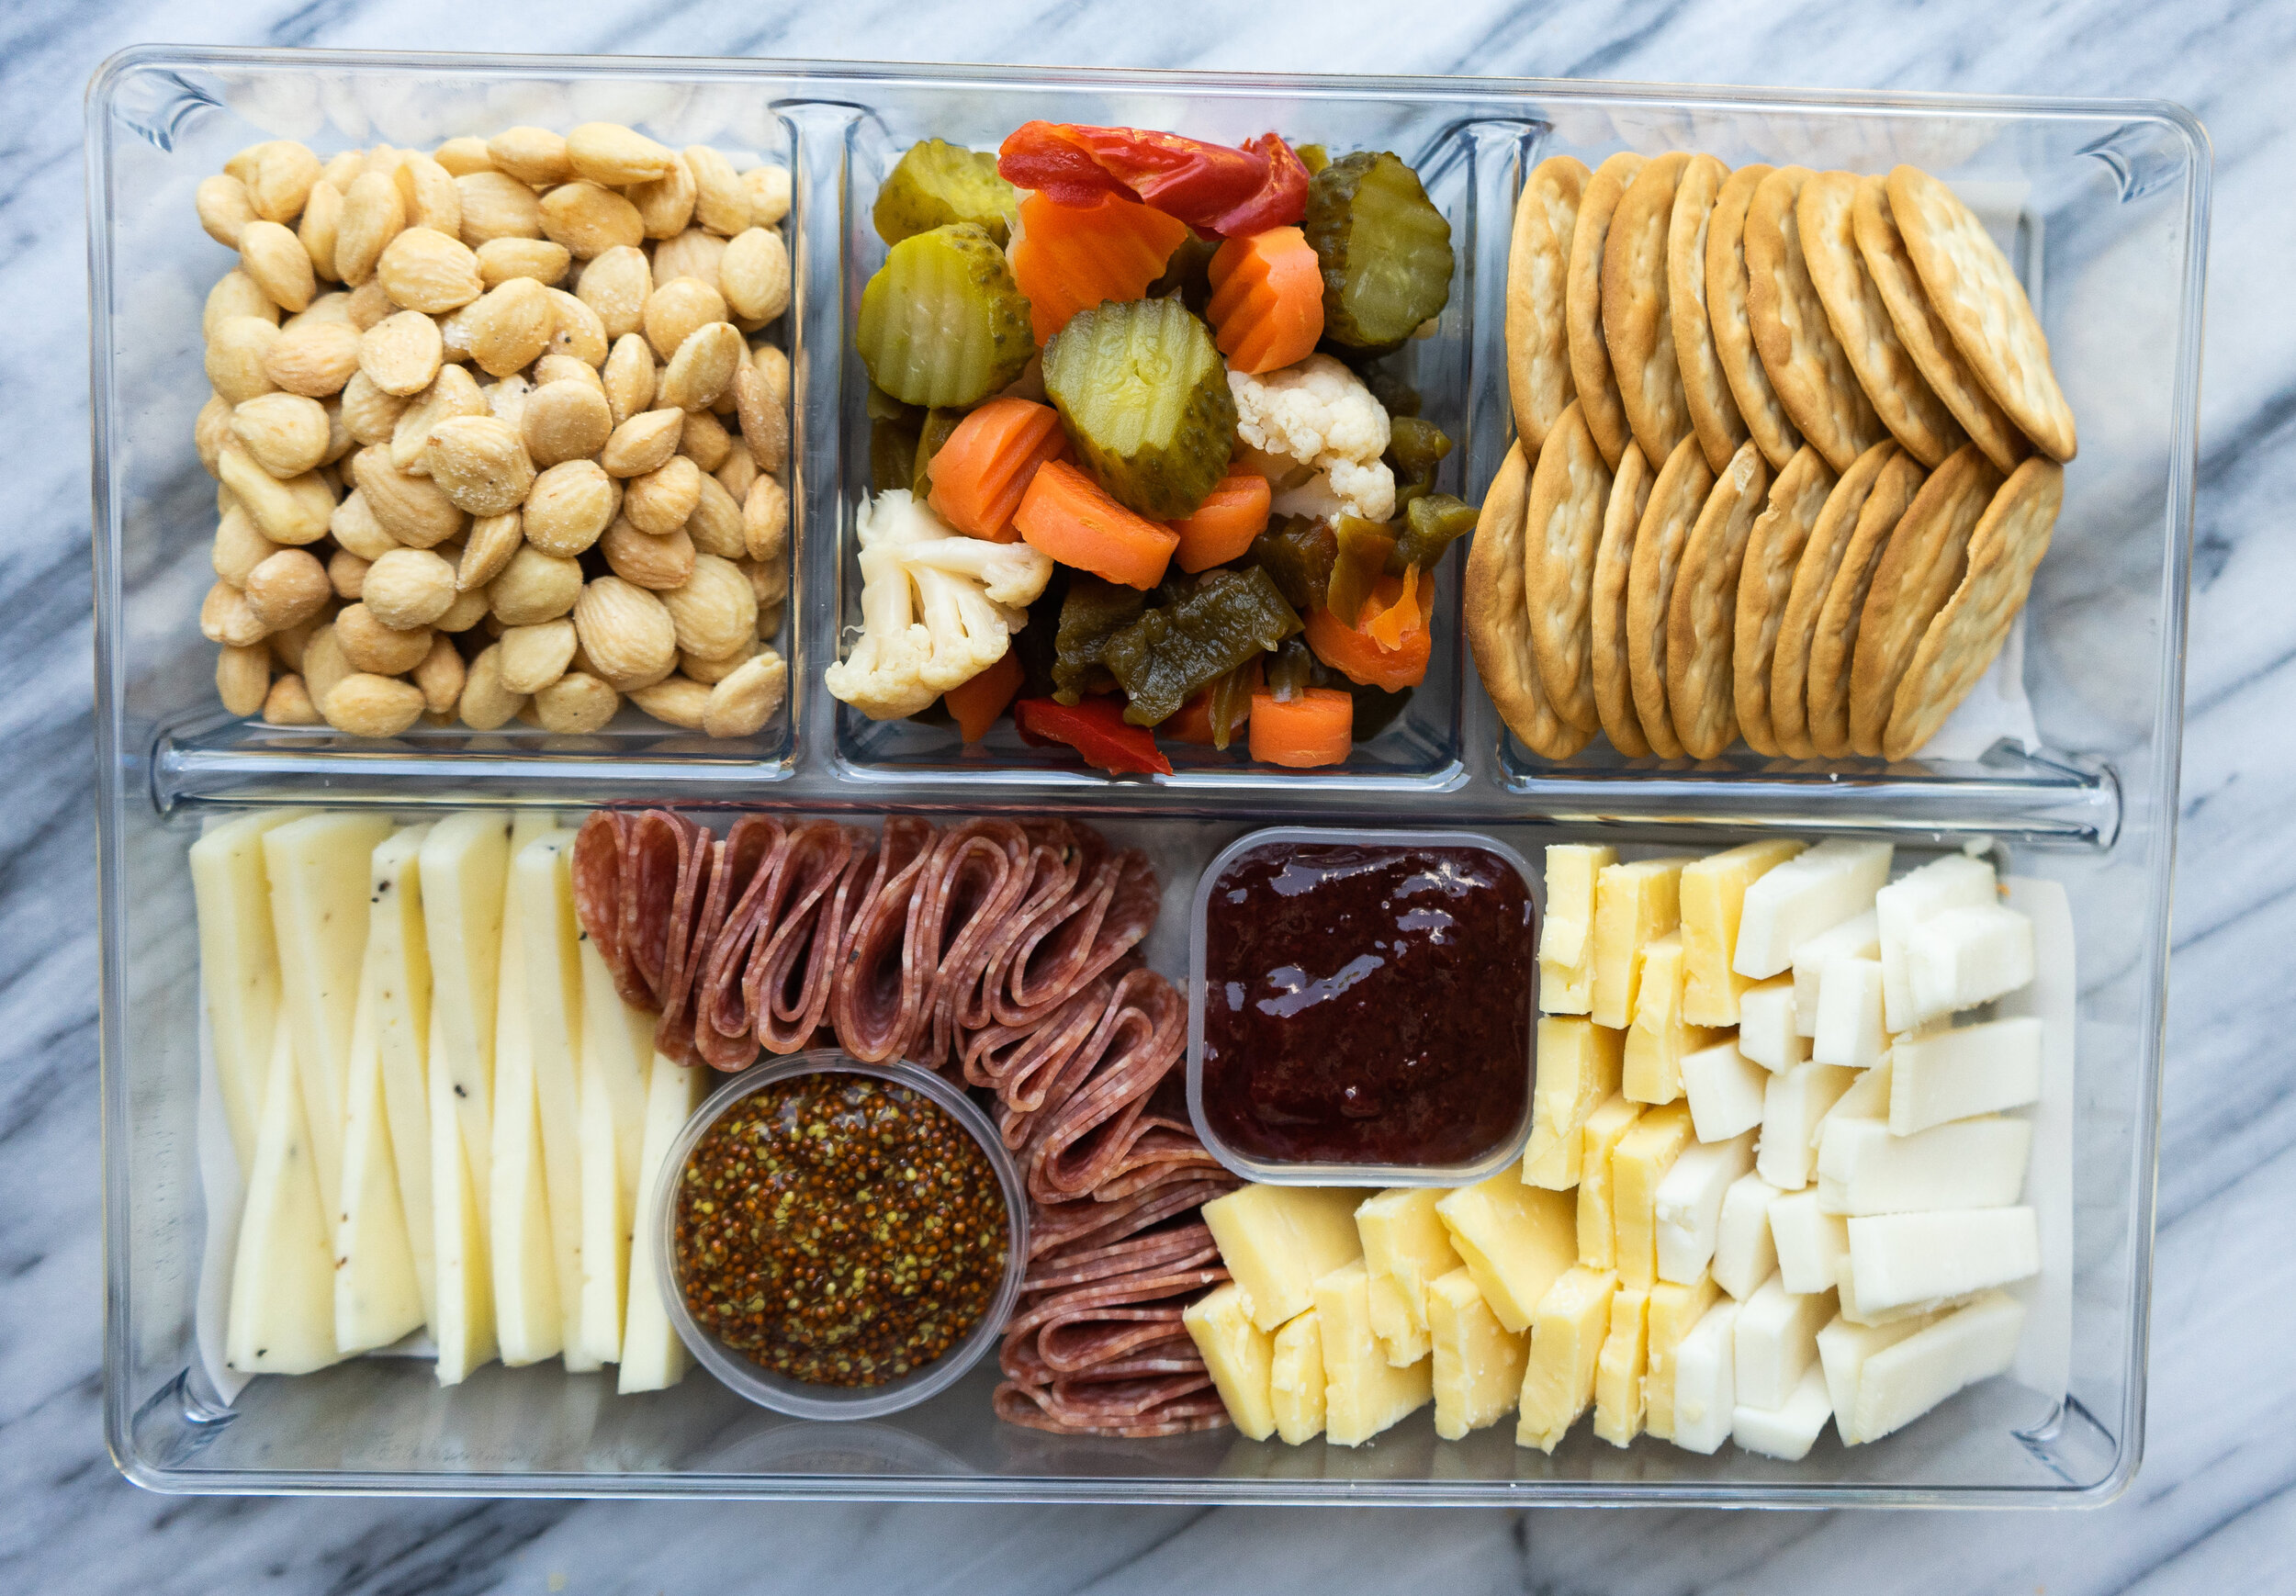 Take your cheese boards on the go with this simple trick for making a Trader Joe's cheese board on-the-go. I love to make charcuterie boards and cheese plates of all kinds and you can use a simple drawer organizer to take them as a party appetizer or football tailgating snack!